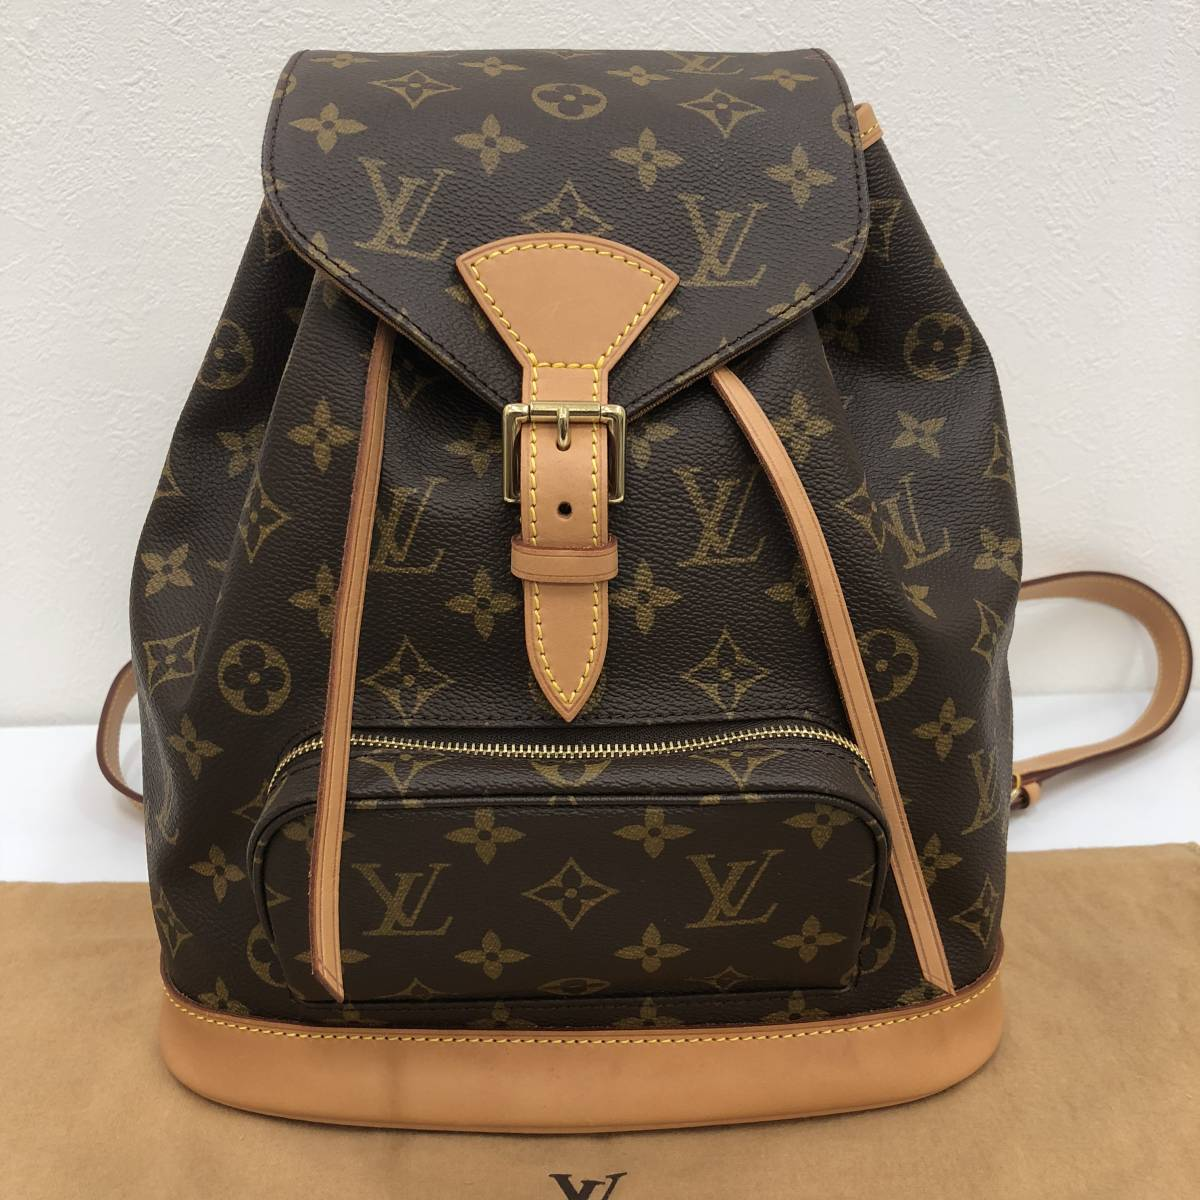 LOUIS VUITTON ルイヴィトン モノグラム モンスリMM M51136 リュックサック 美品 バックパック ルイ・ヴィトン_画像2